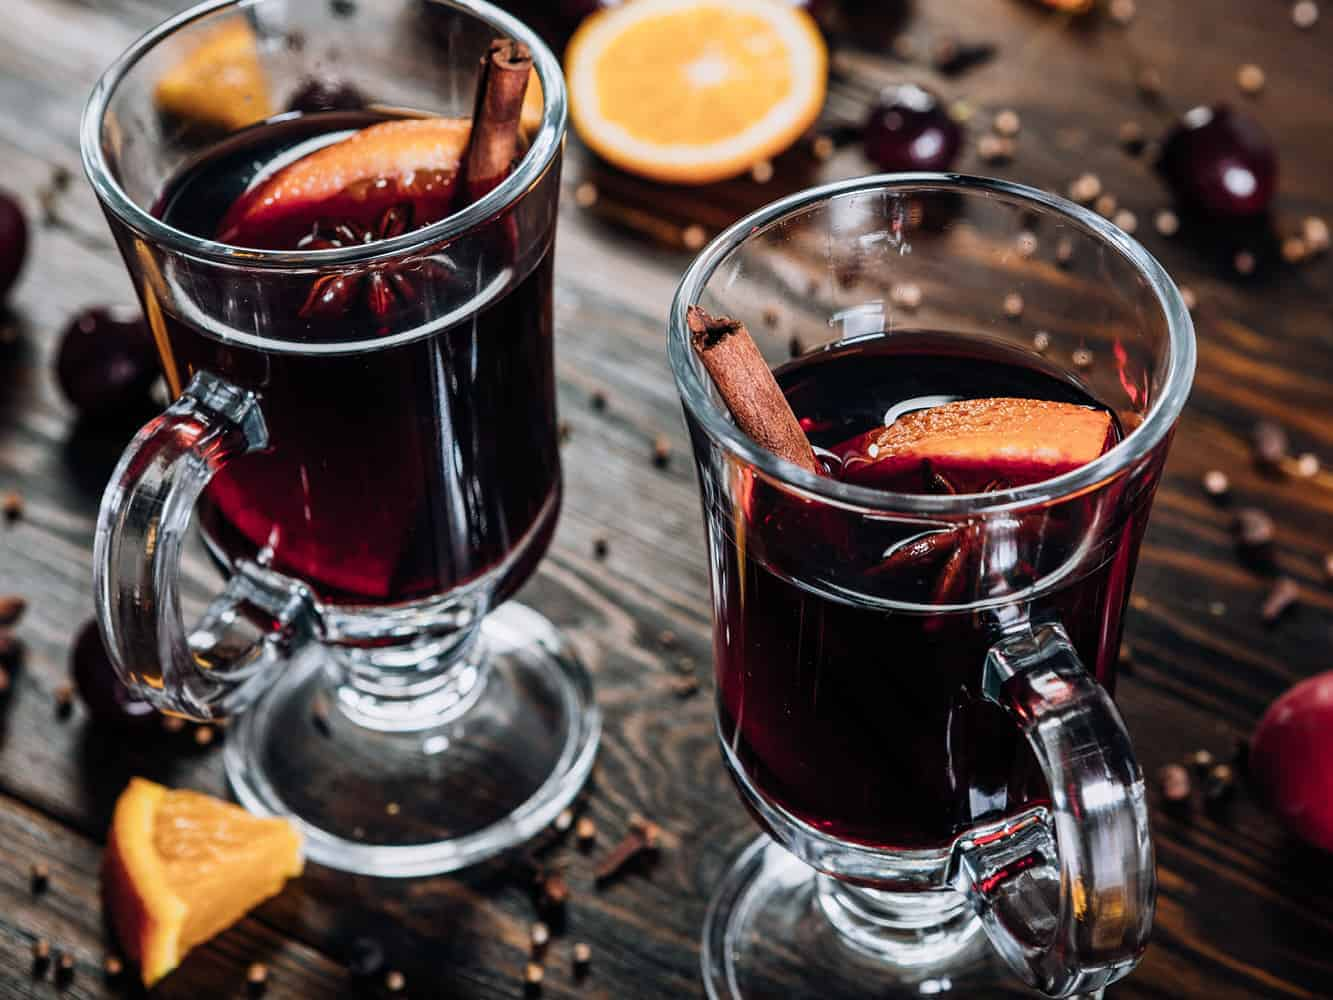 How to get rid of mulled wine stain